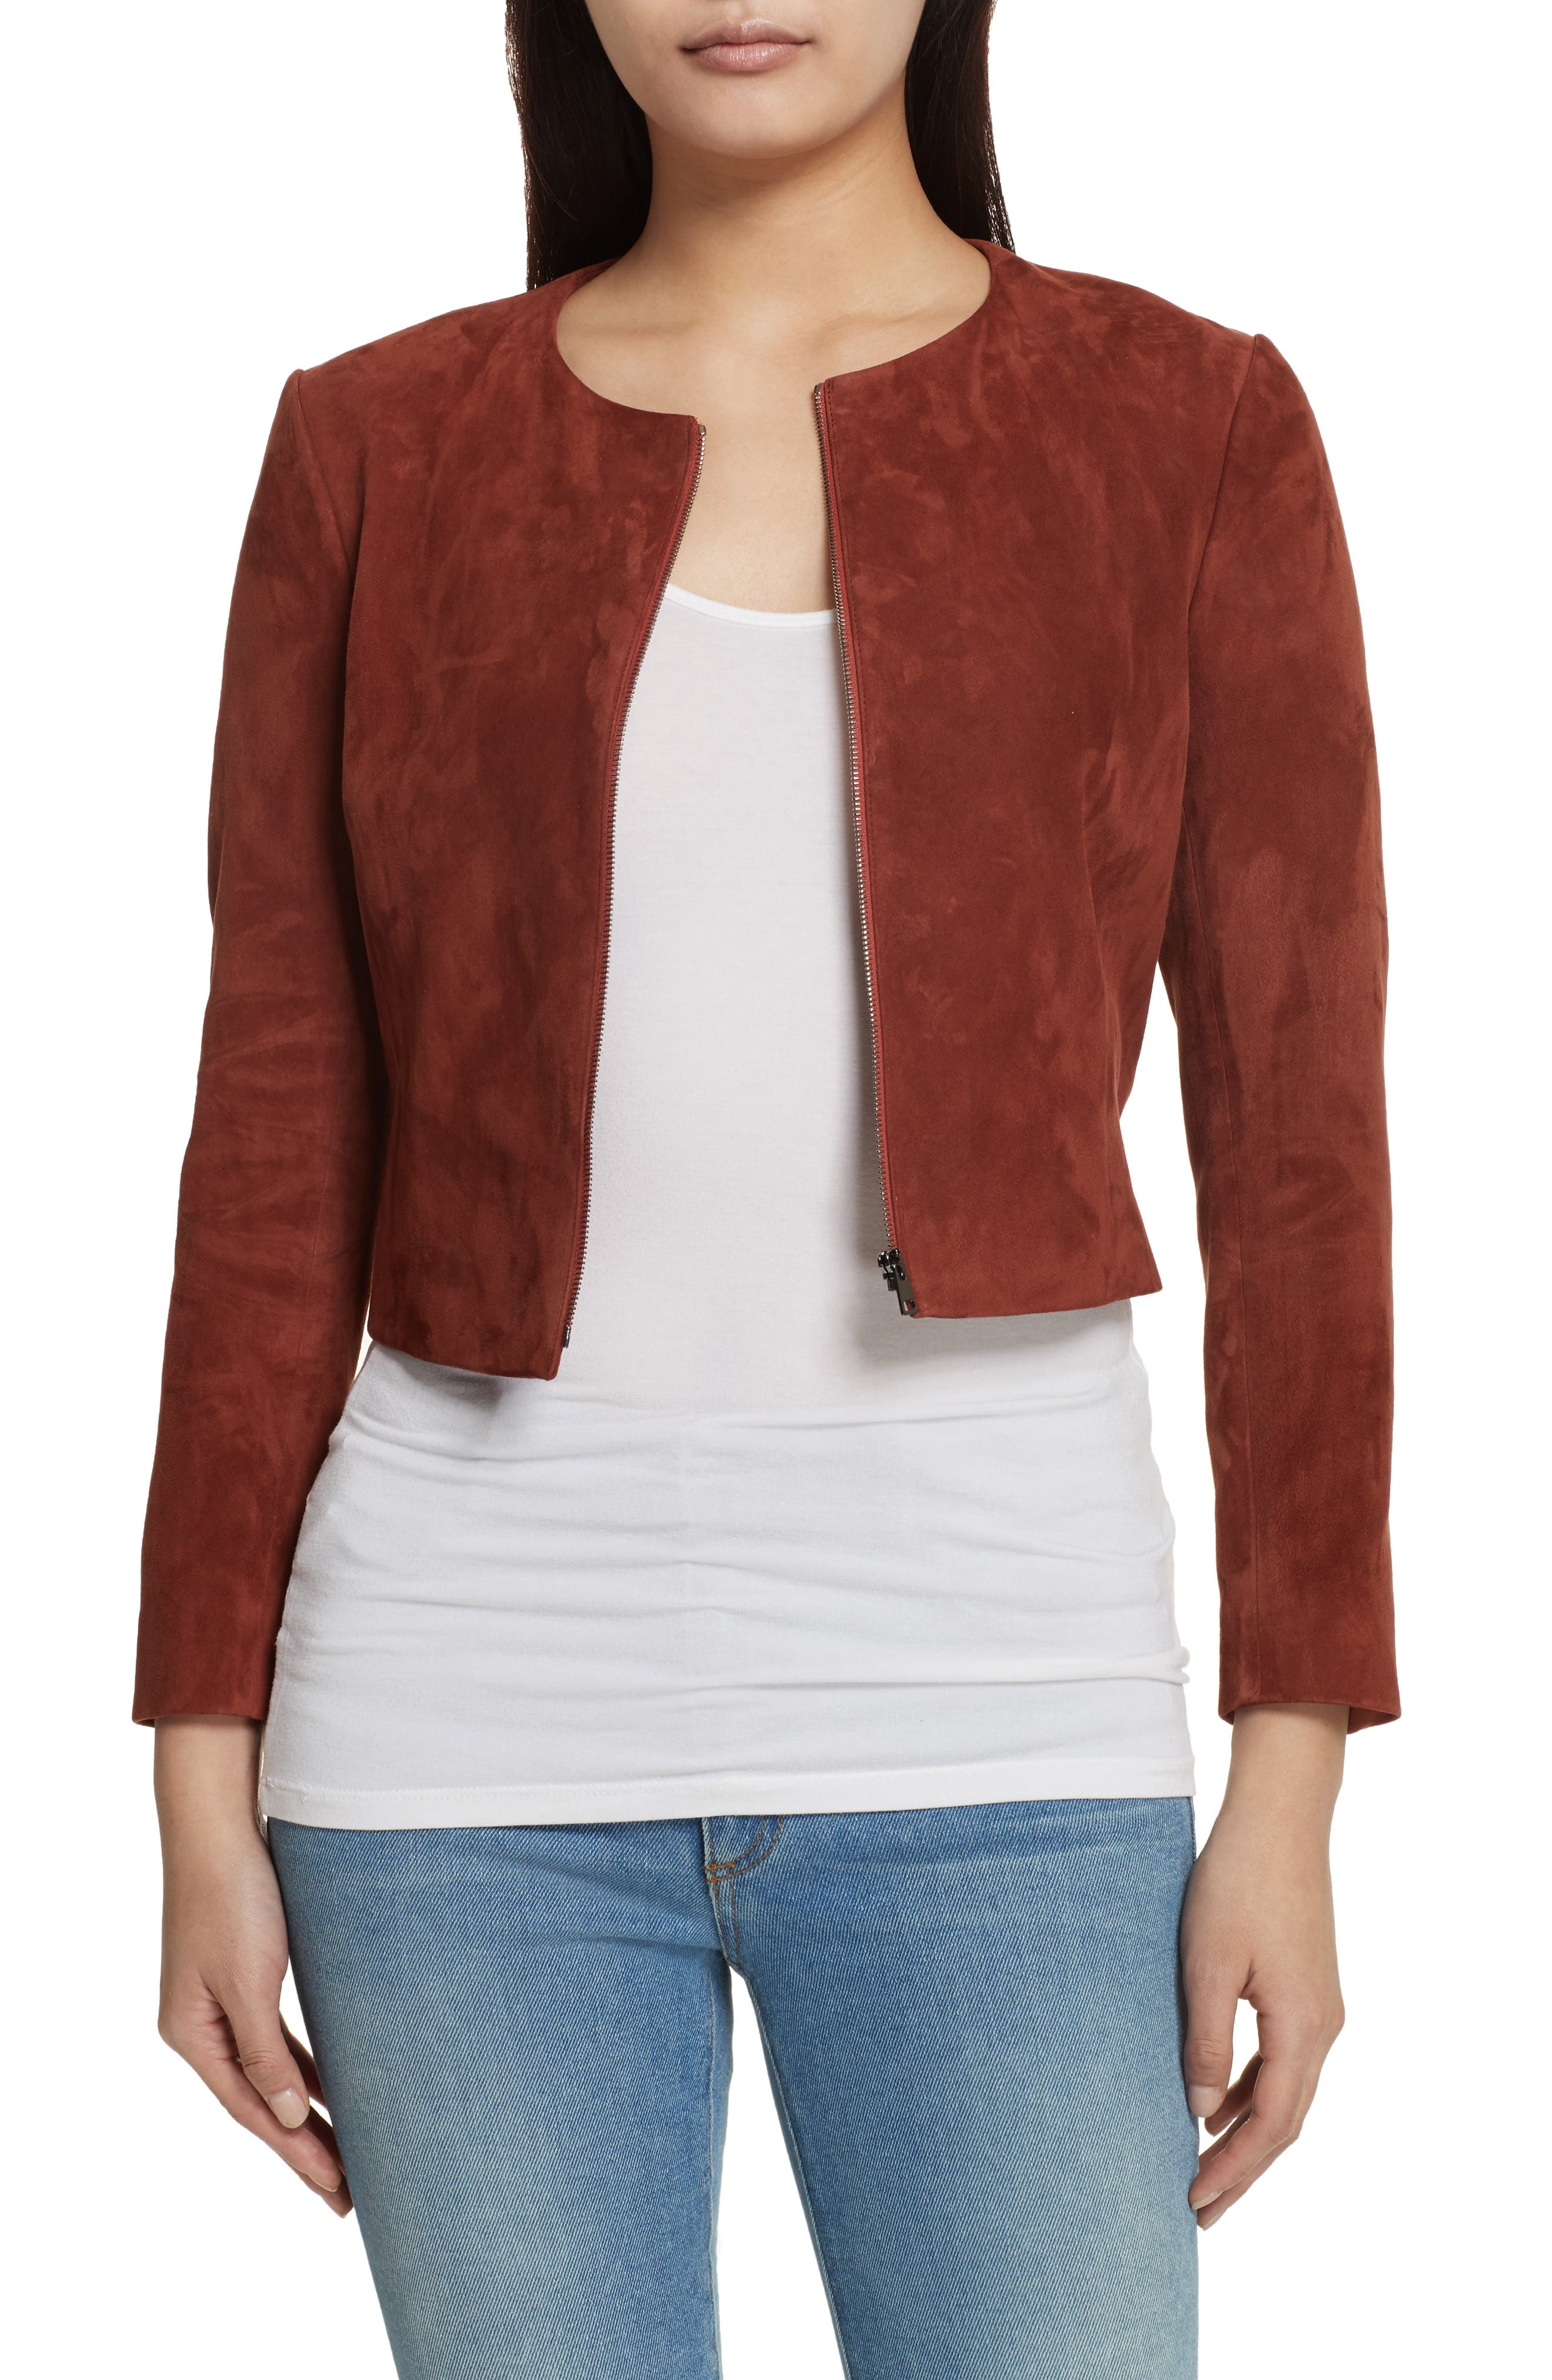 Morene Stretch Suede Jacket,                             Main thumbnail 1, color,                             Brown Russet